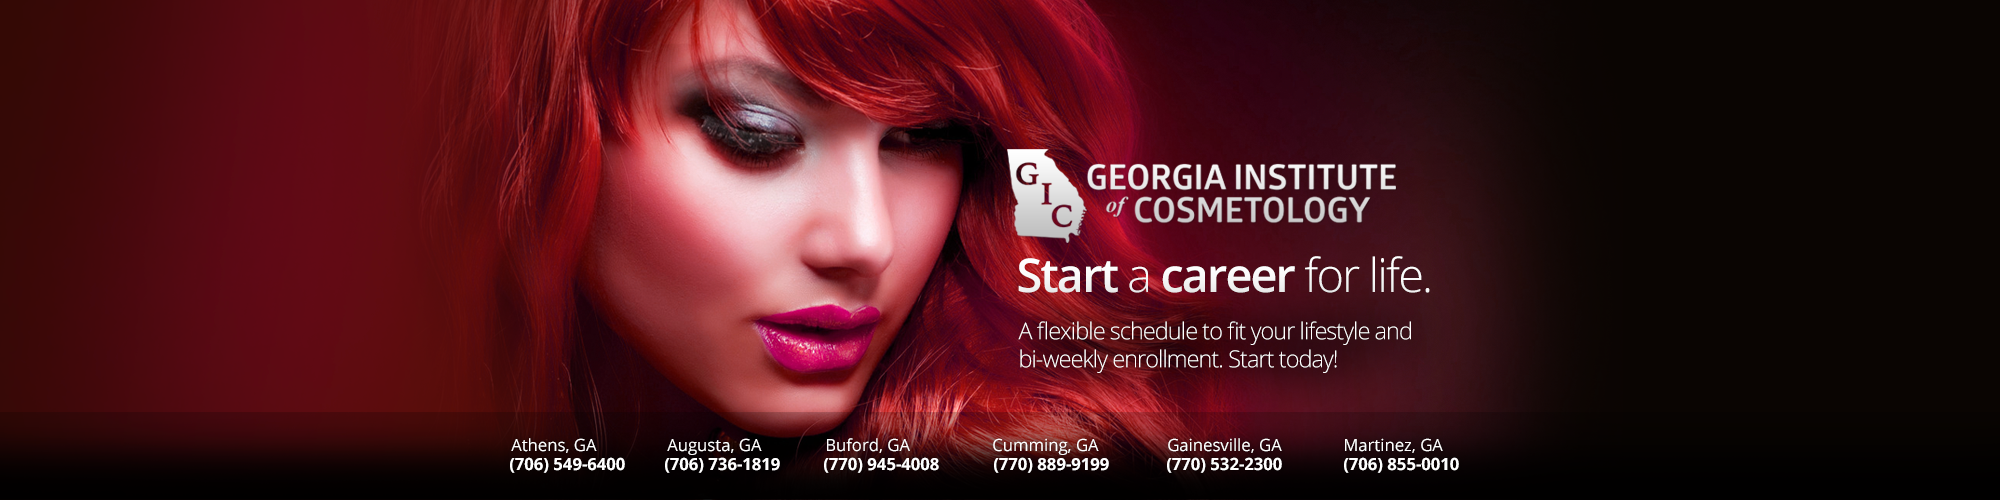 Beauty School Cumming Georgia - The mission of the Georgia Institute of Cosmetology is to provide exceptional, state-of-the-art cosmetology training for serious students who wish to pursue personal career goals in cosmetology and related fields. The school seeks to prepare students for the real-world work environment and employer demands via the latest self-paced structural programs which use both individual and group instruction, cater to the needs of the individual, enforce discipline and moral values, and impart the joys of achievement and quality performance. Located in Athens Georgia, Augusta Georgia, Cumming Georgia, Gainesville Georgia, Martinez Georgia, Sugar Hill Georgia, Forsyth Georgia, Buford Georgia